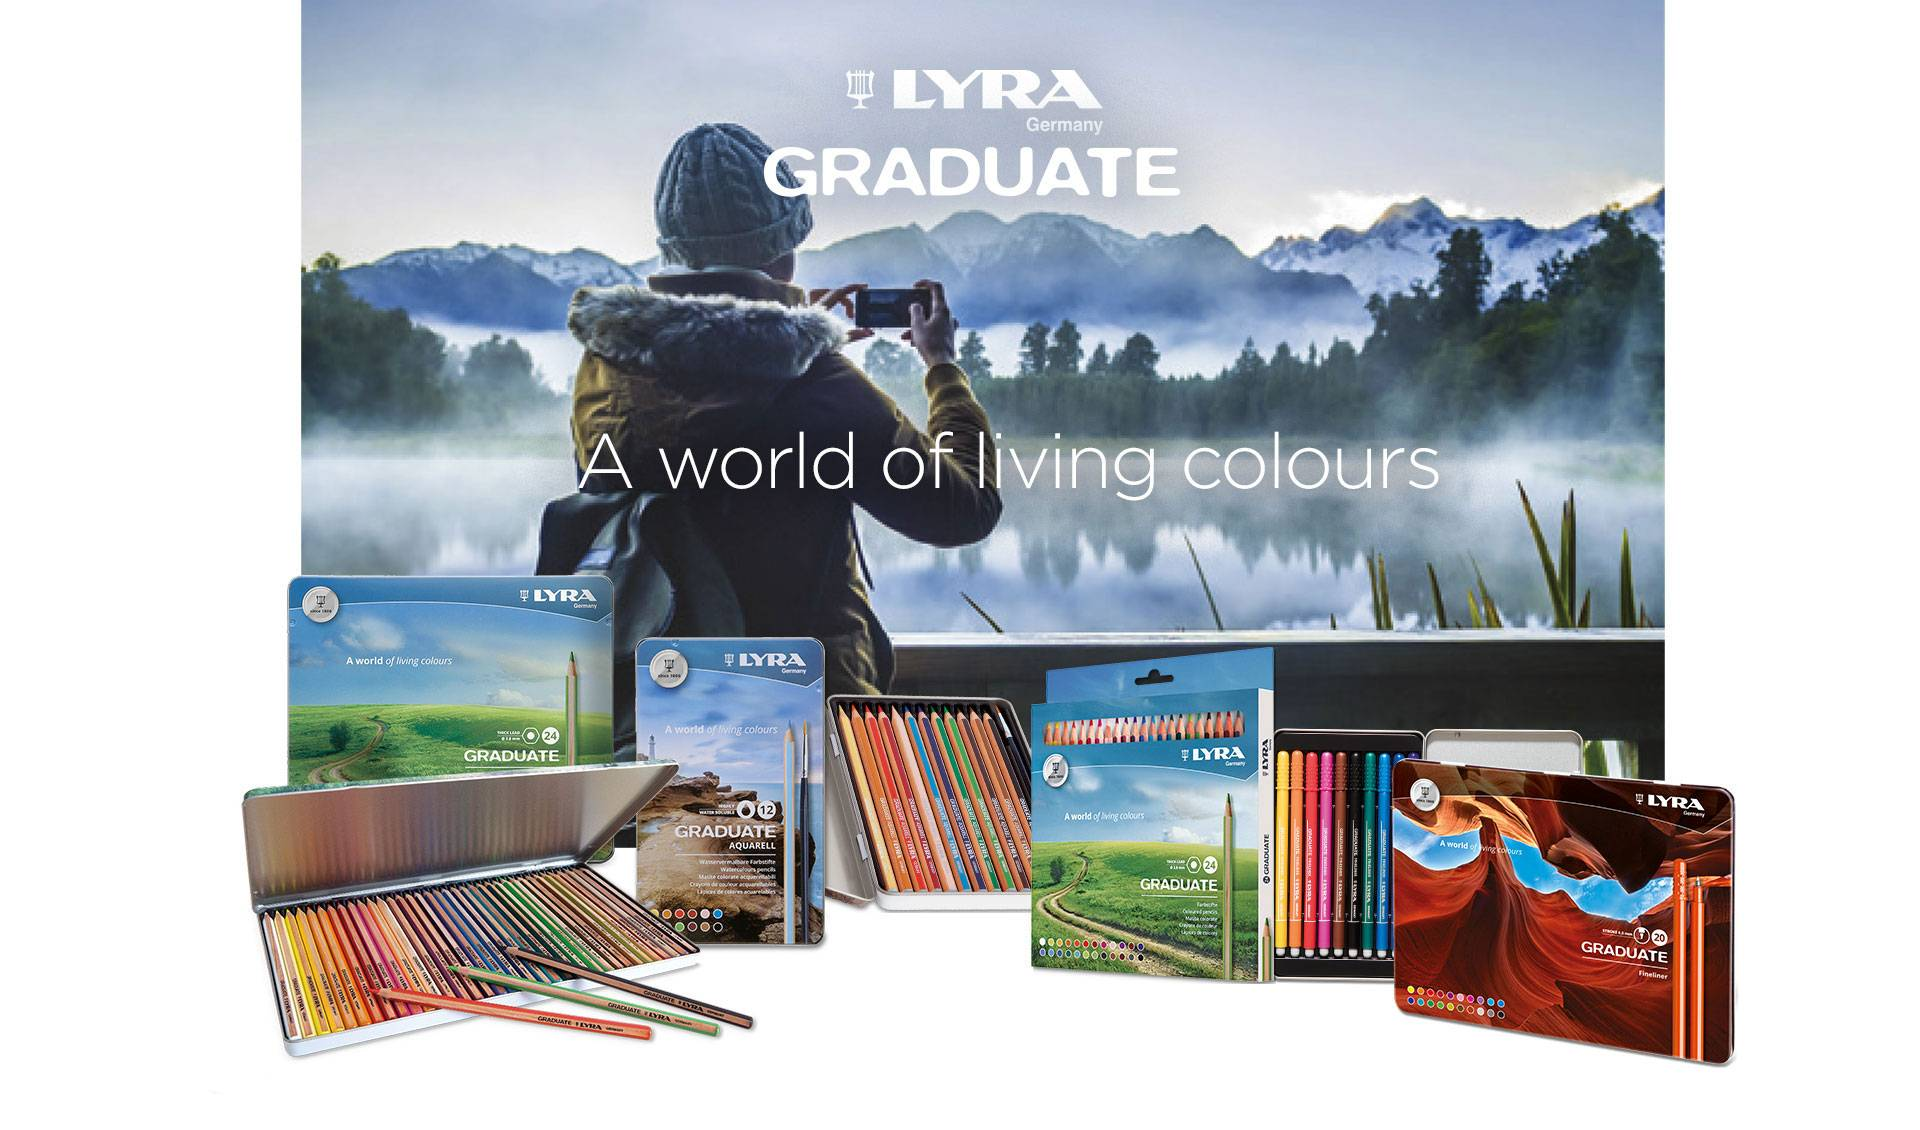 Lyra Graduate - A world of living colours